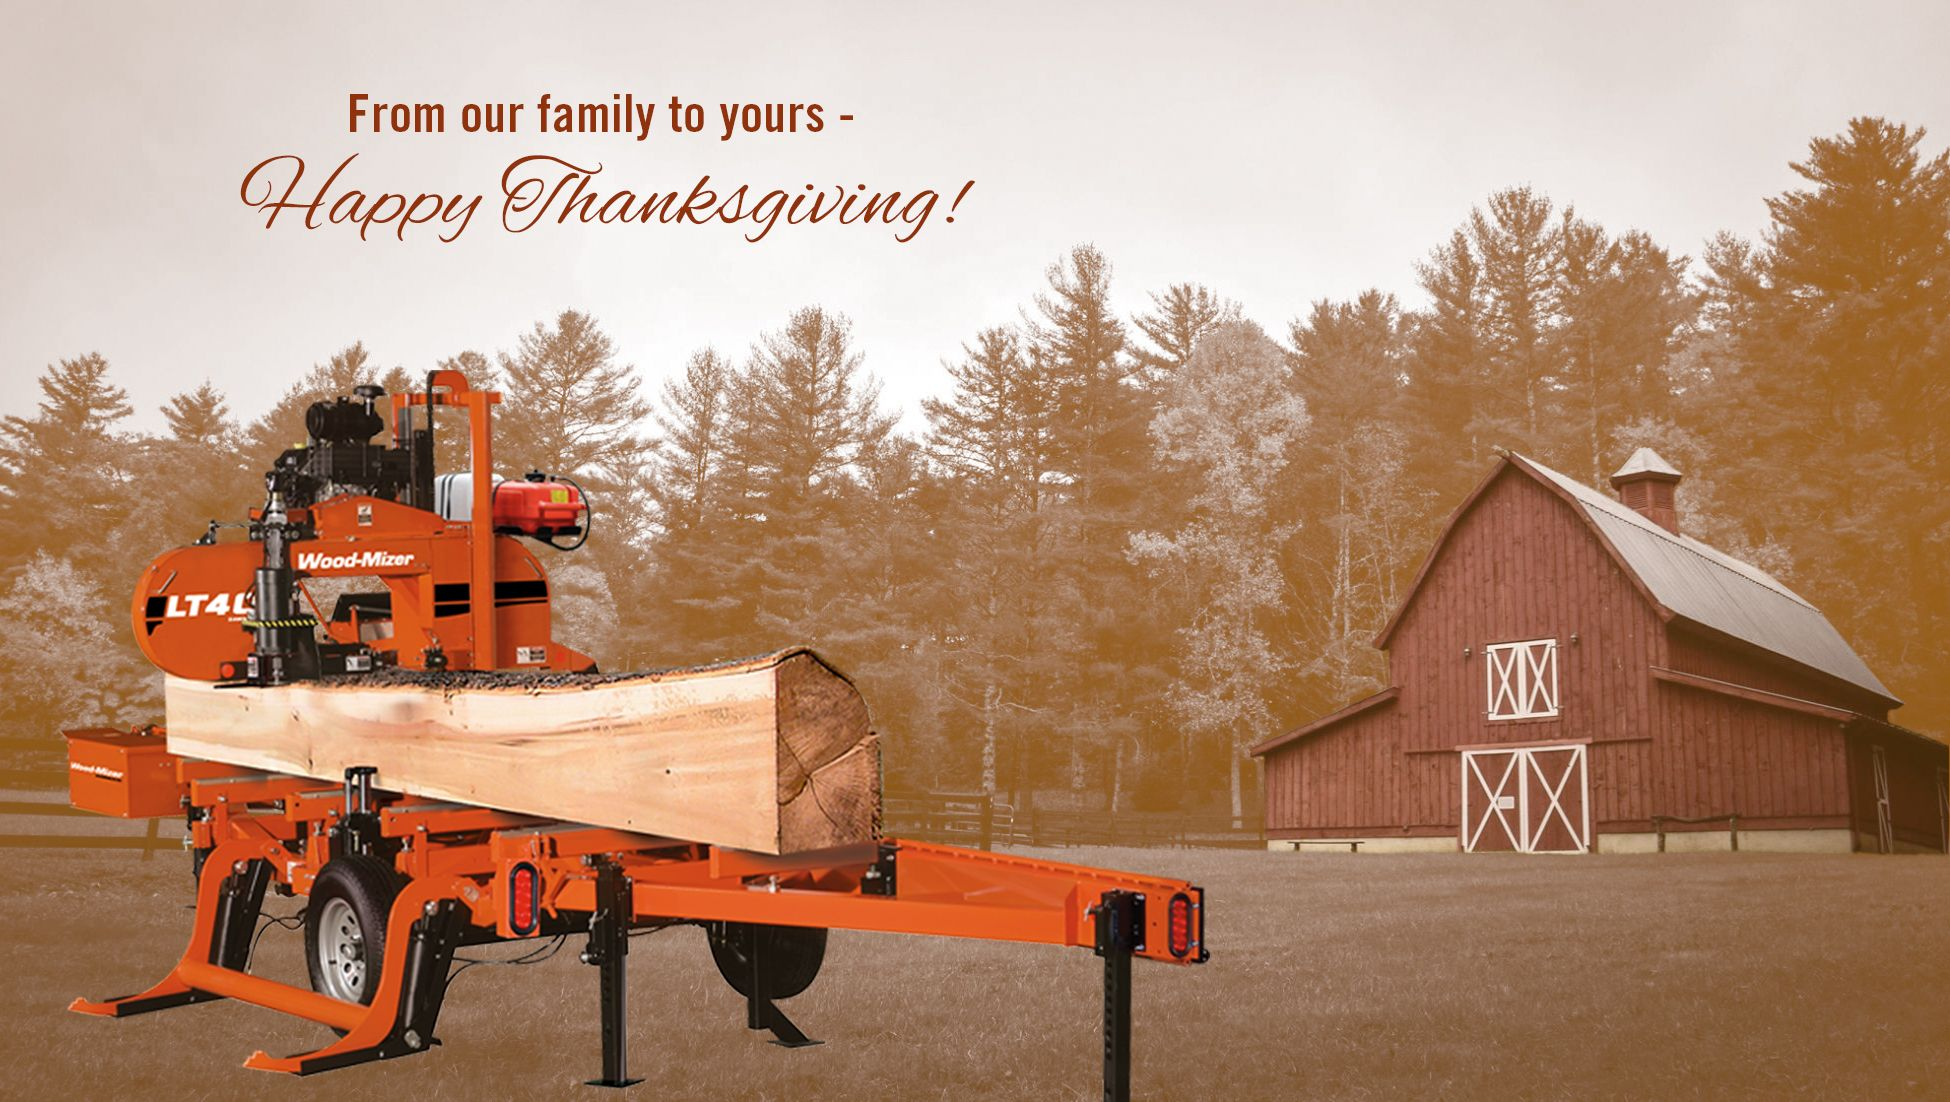 happy thanksgiving from our family to yours holidays turkey